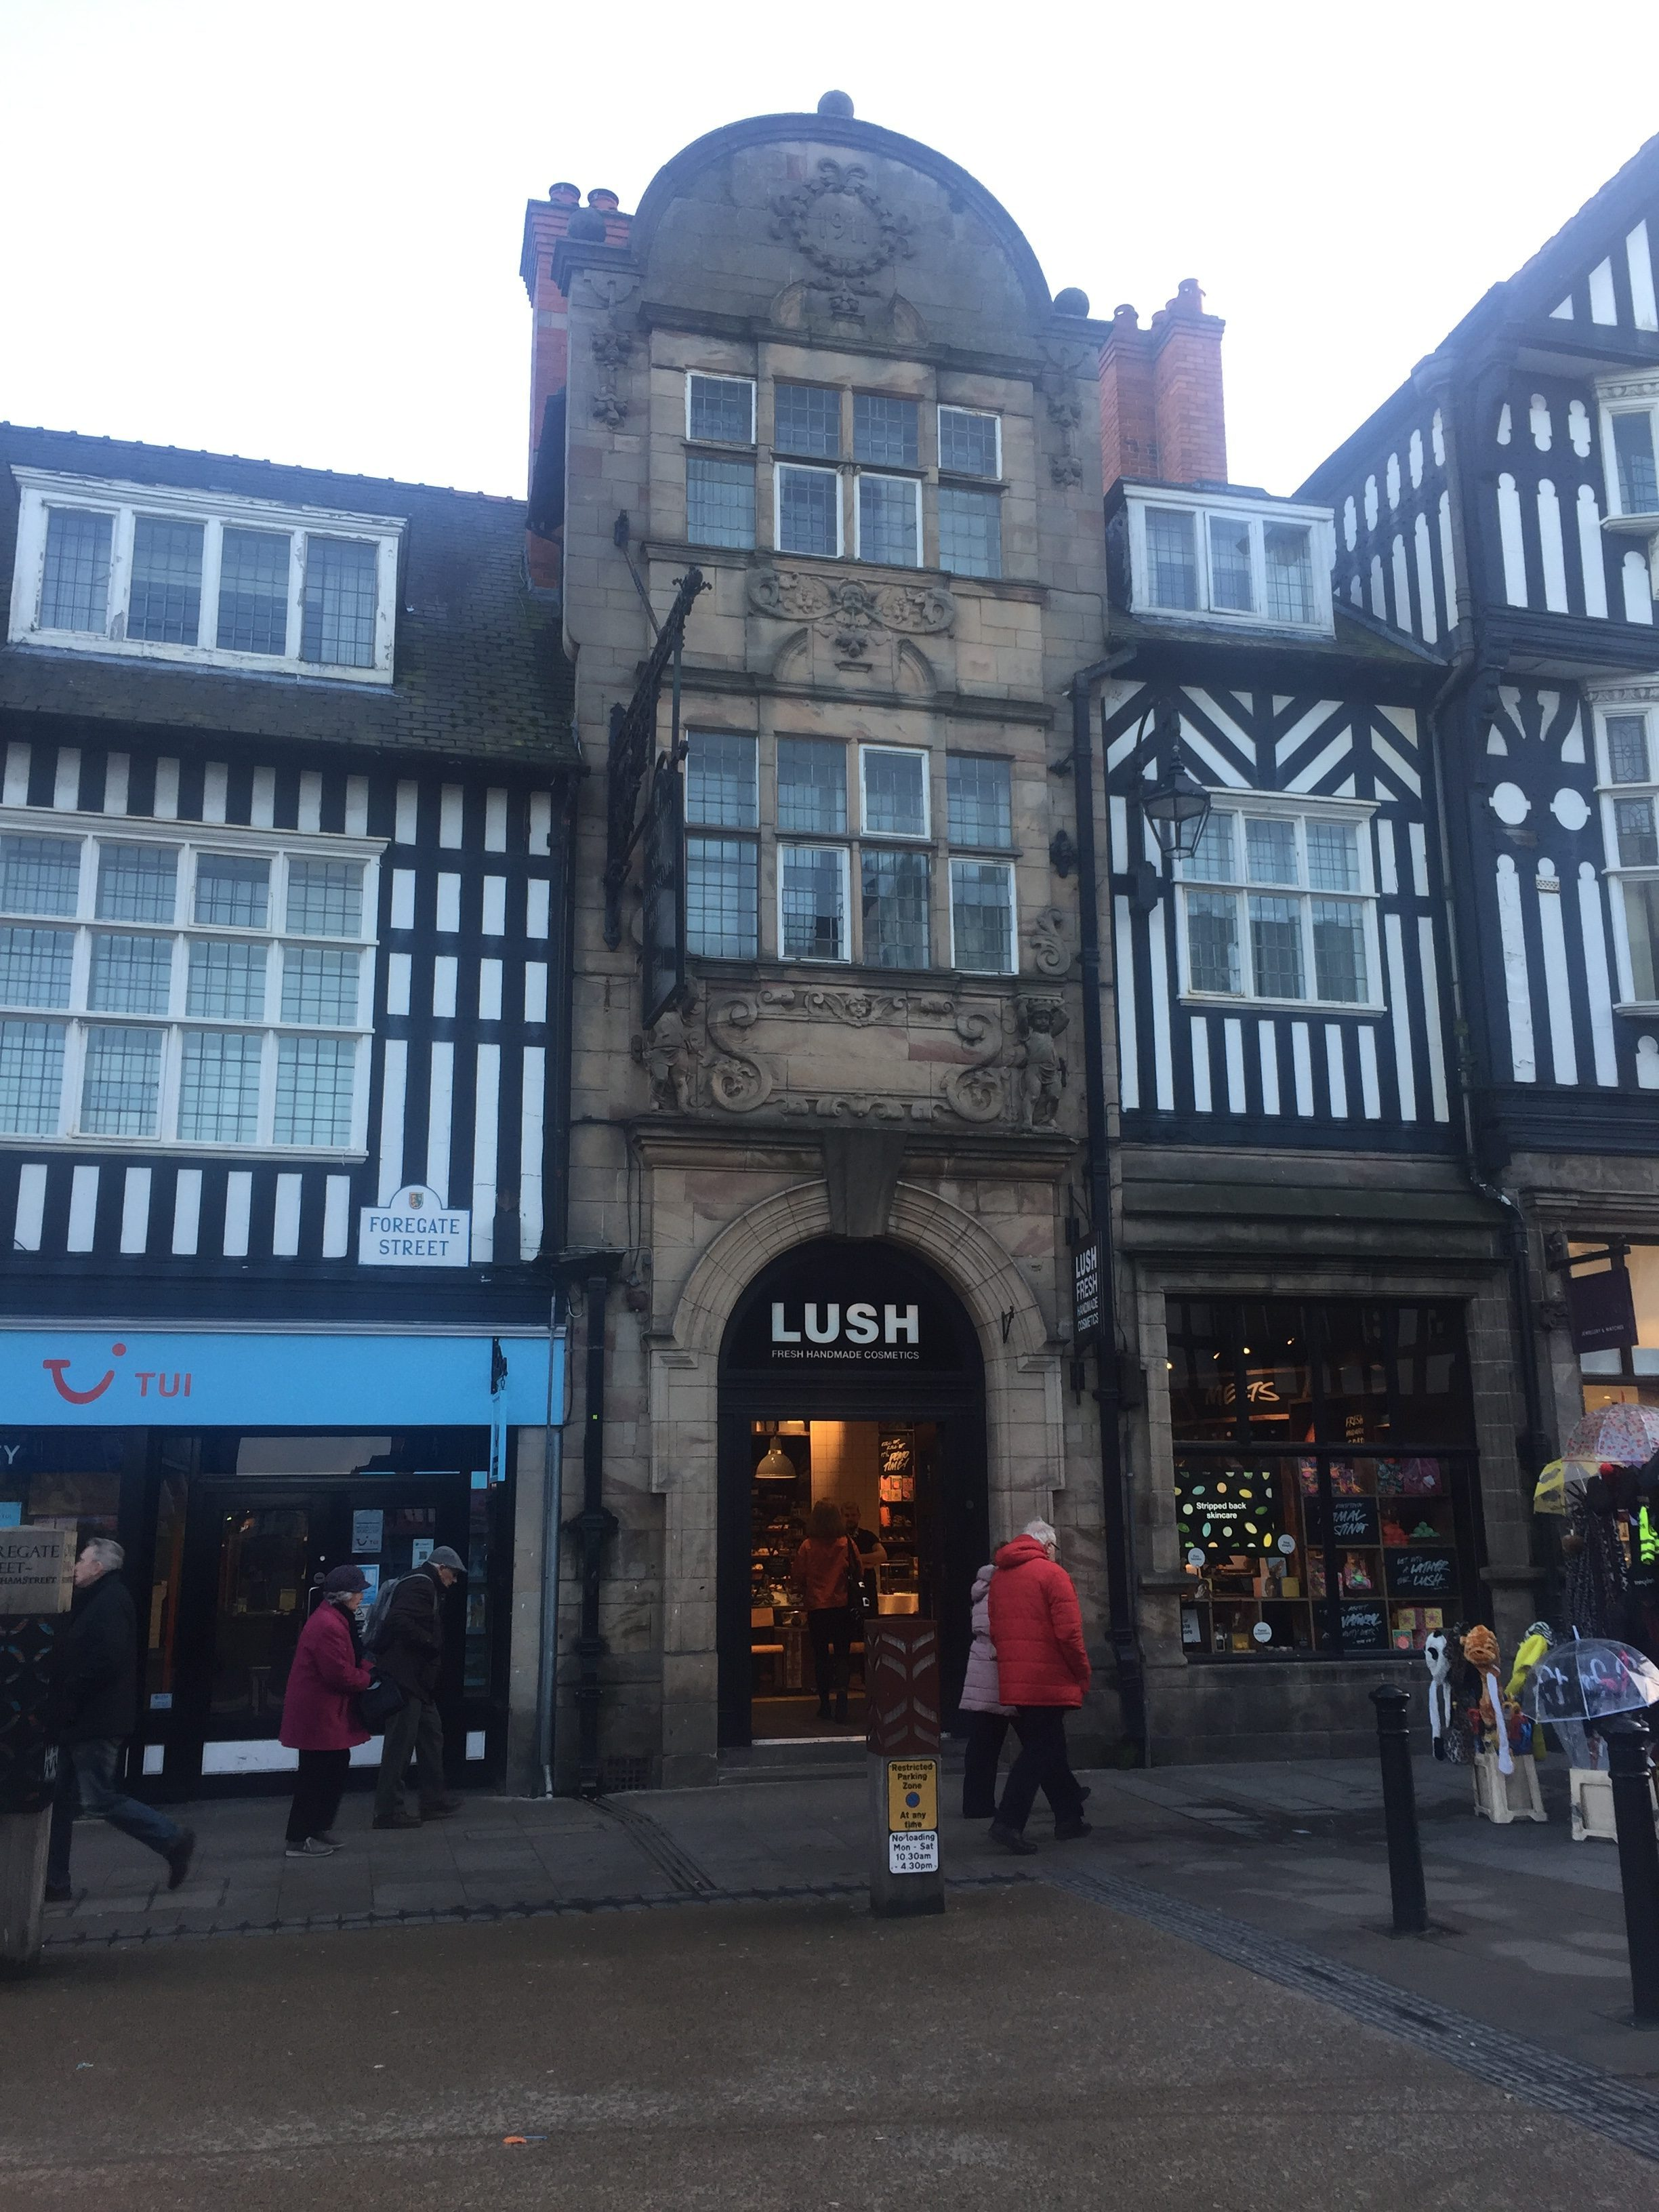 Blossoms hotel lush entrance East Gate street Chester